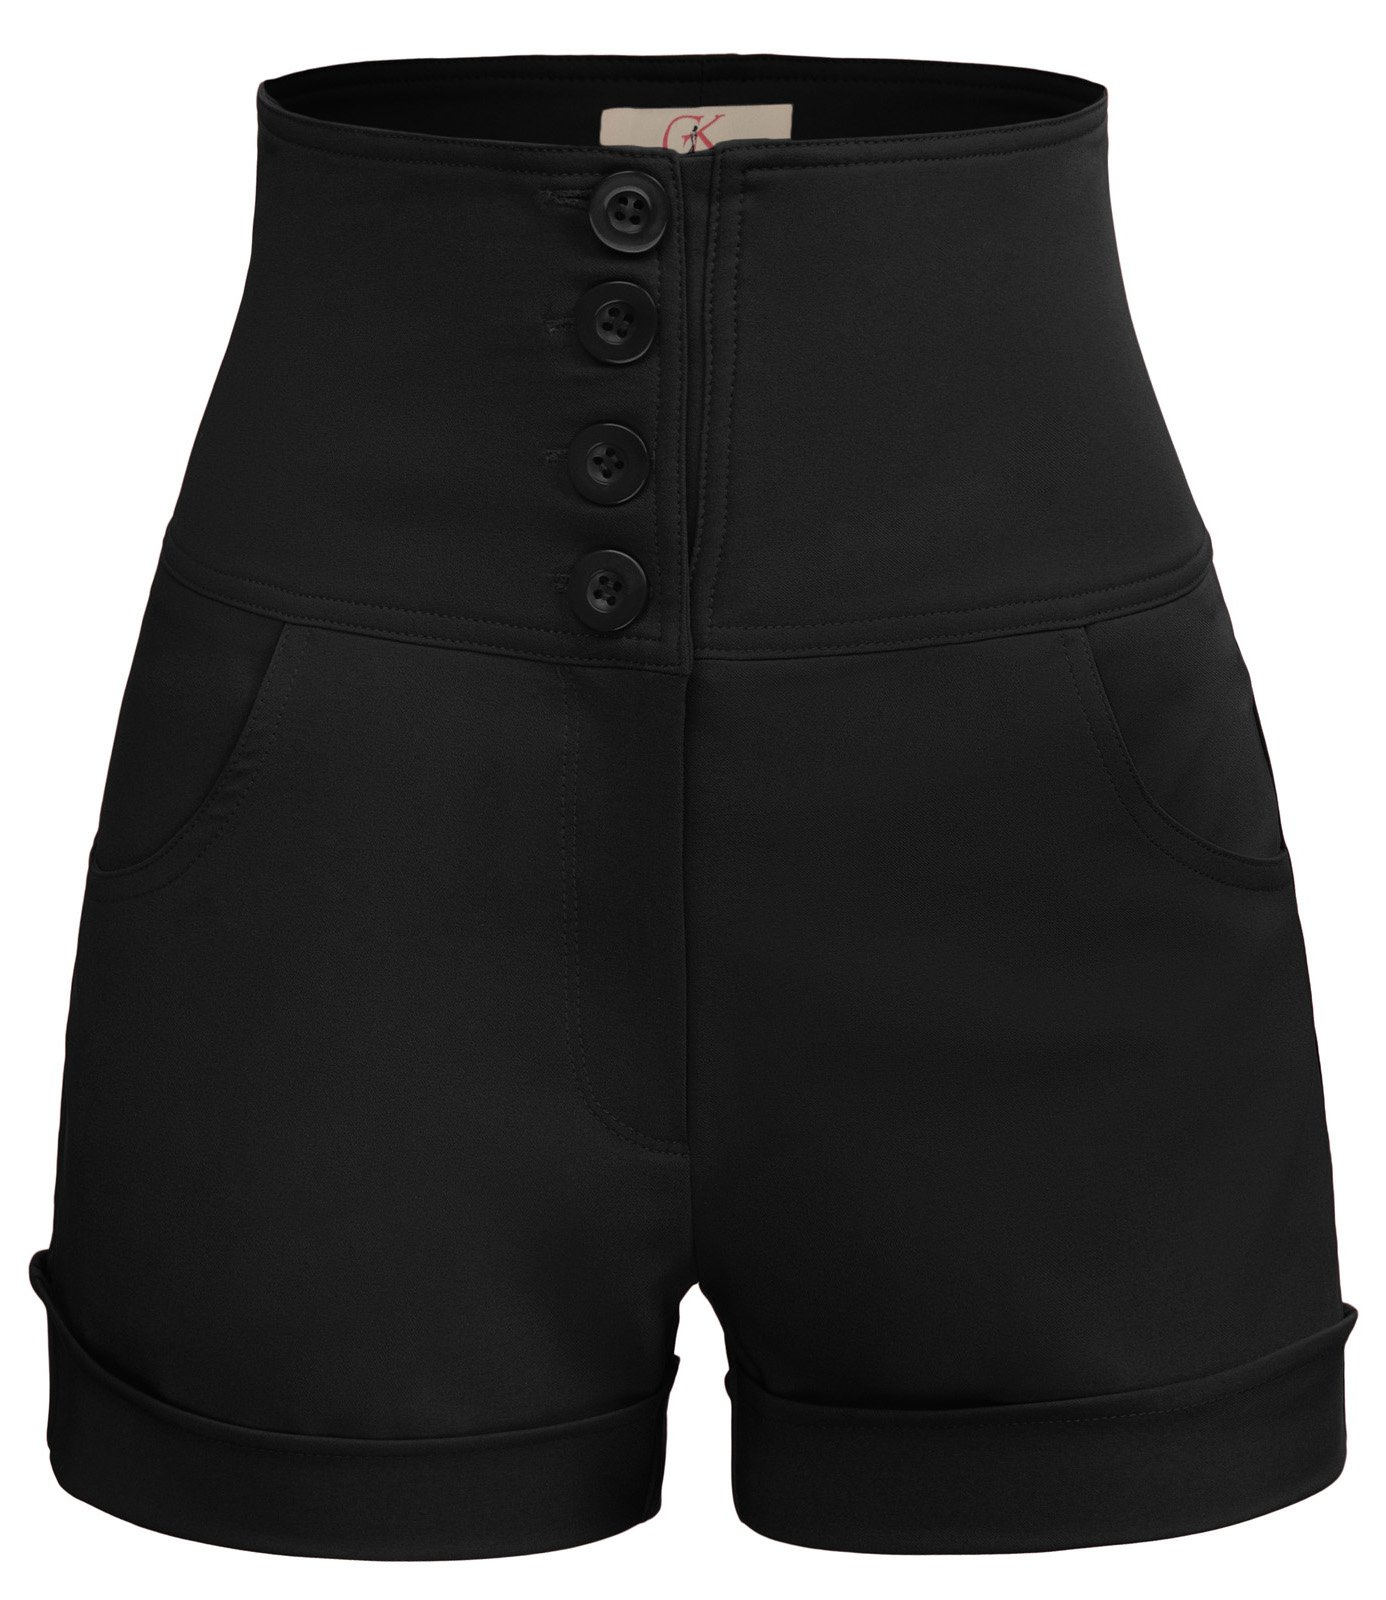 GRACE KARIN Women's Retro High Waist Sailor Cuffed Shorts Size 2XL Black